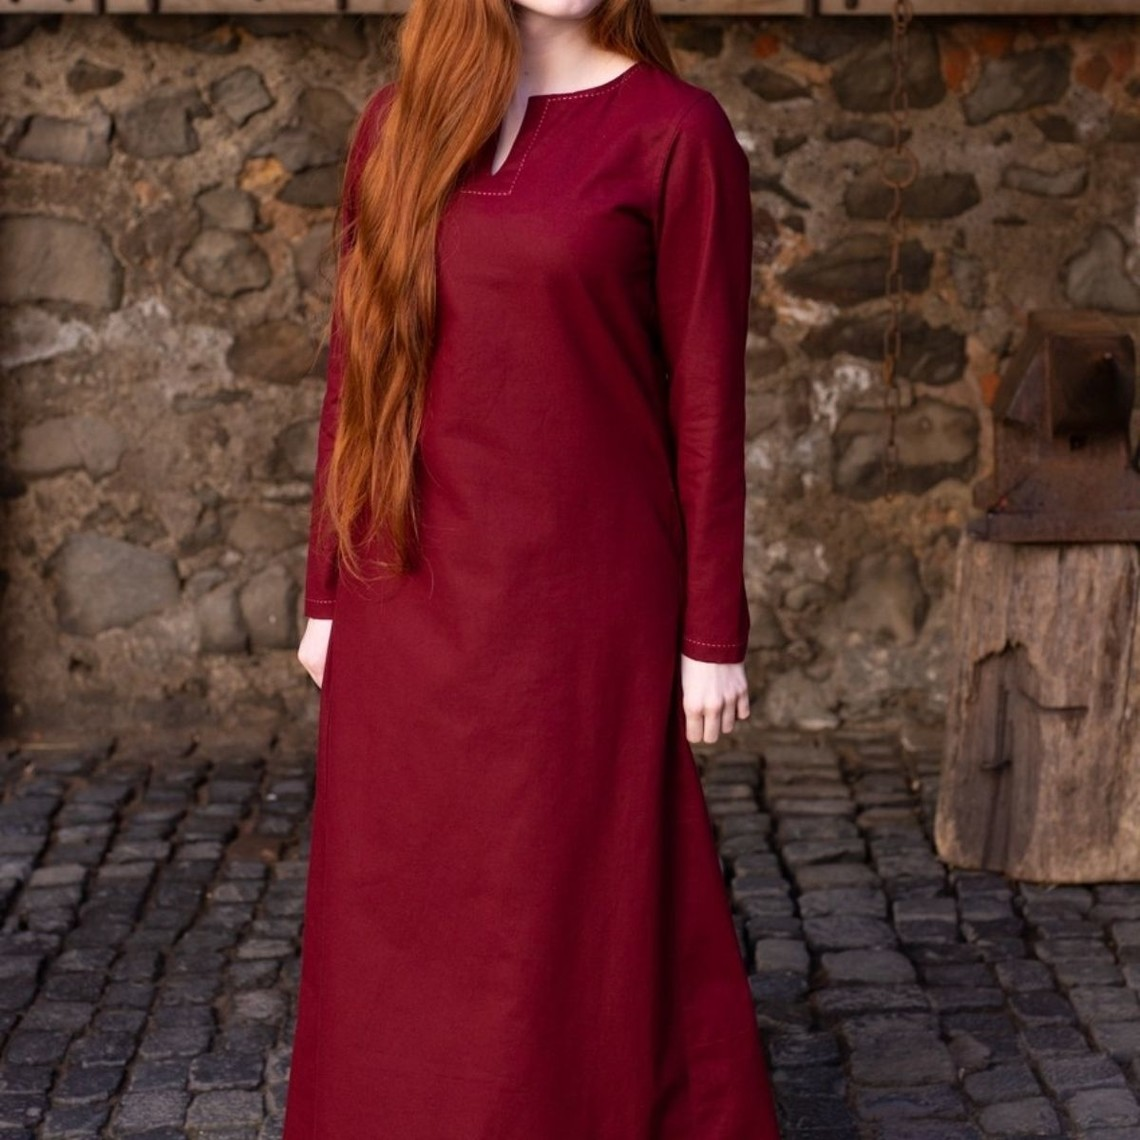 Burgschneider Dress Feme, Burgunder